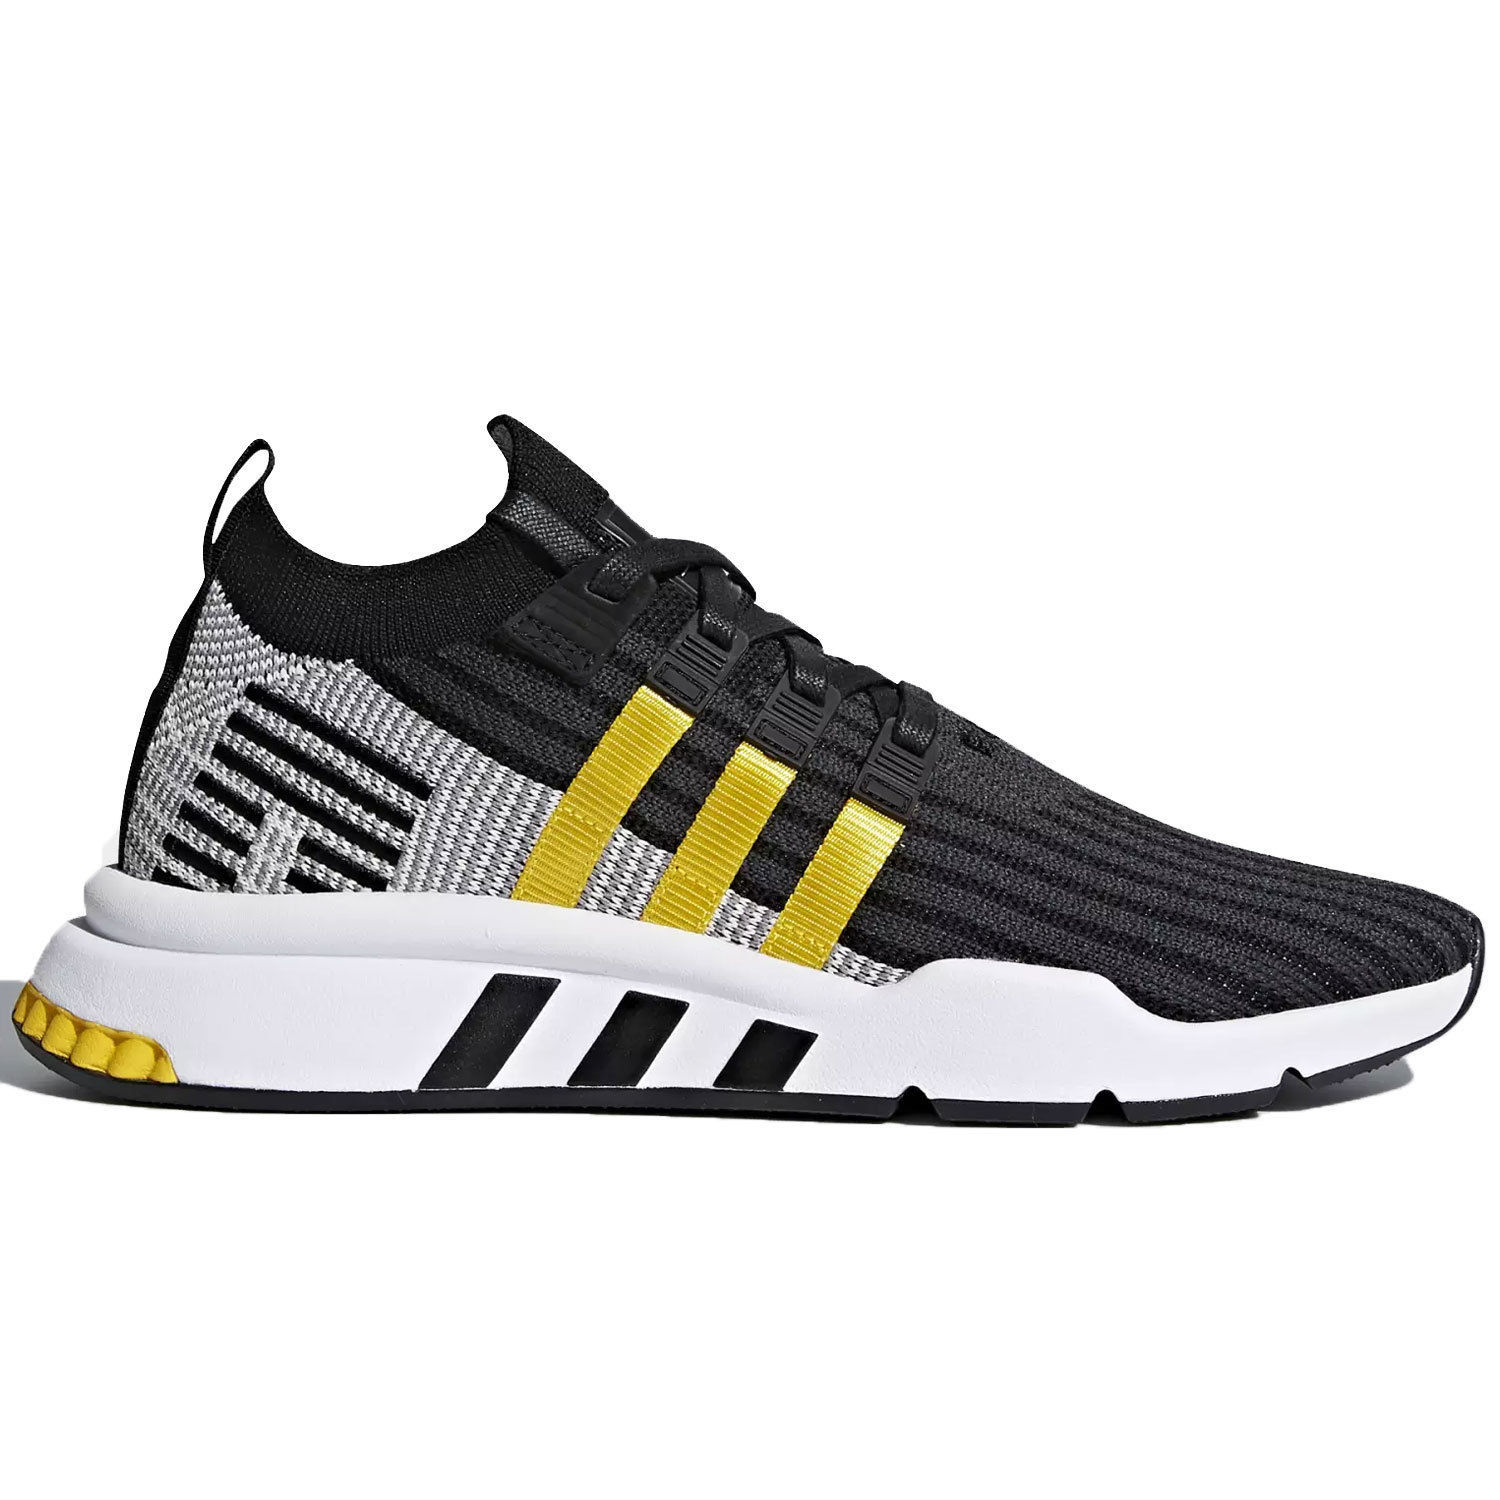 info for 9ce86 922d6 Adidas Mens Eqt Support Mid Adv Black CQ2999 and 50 similar